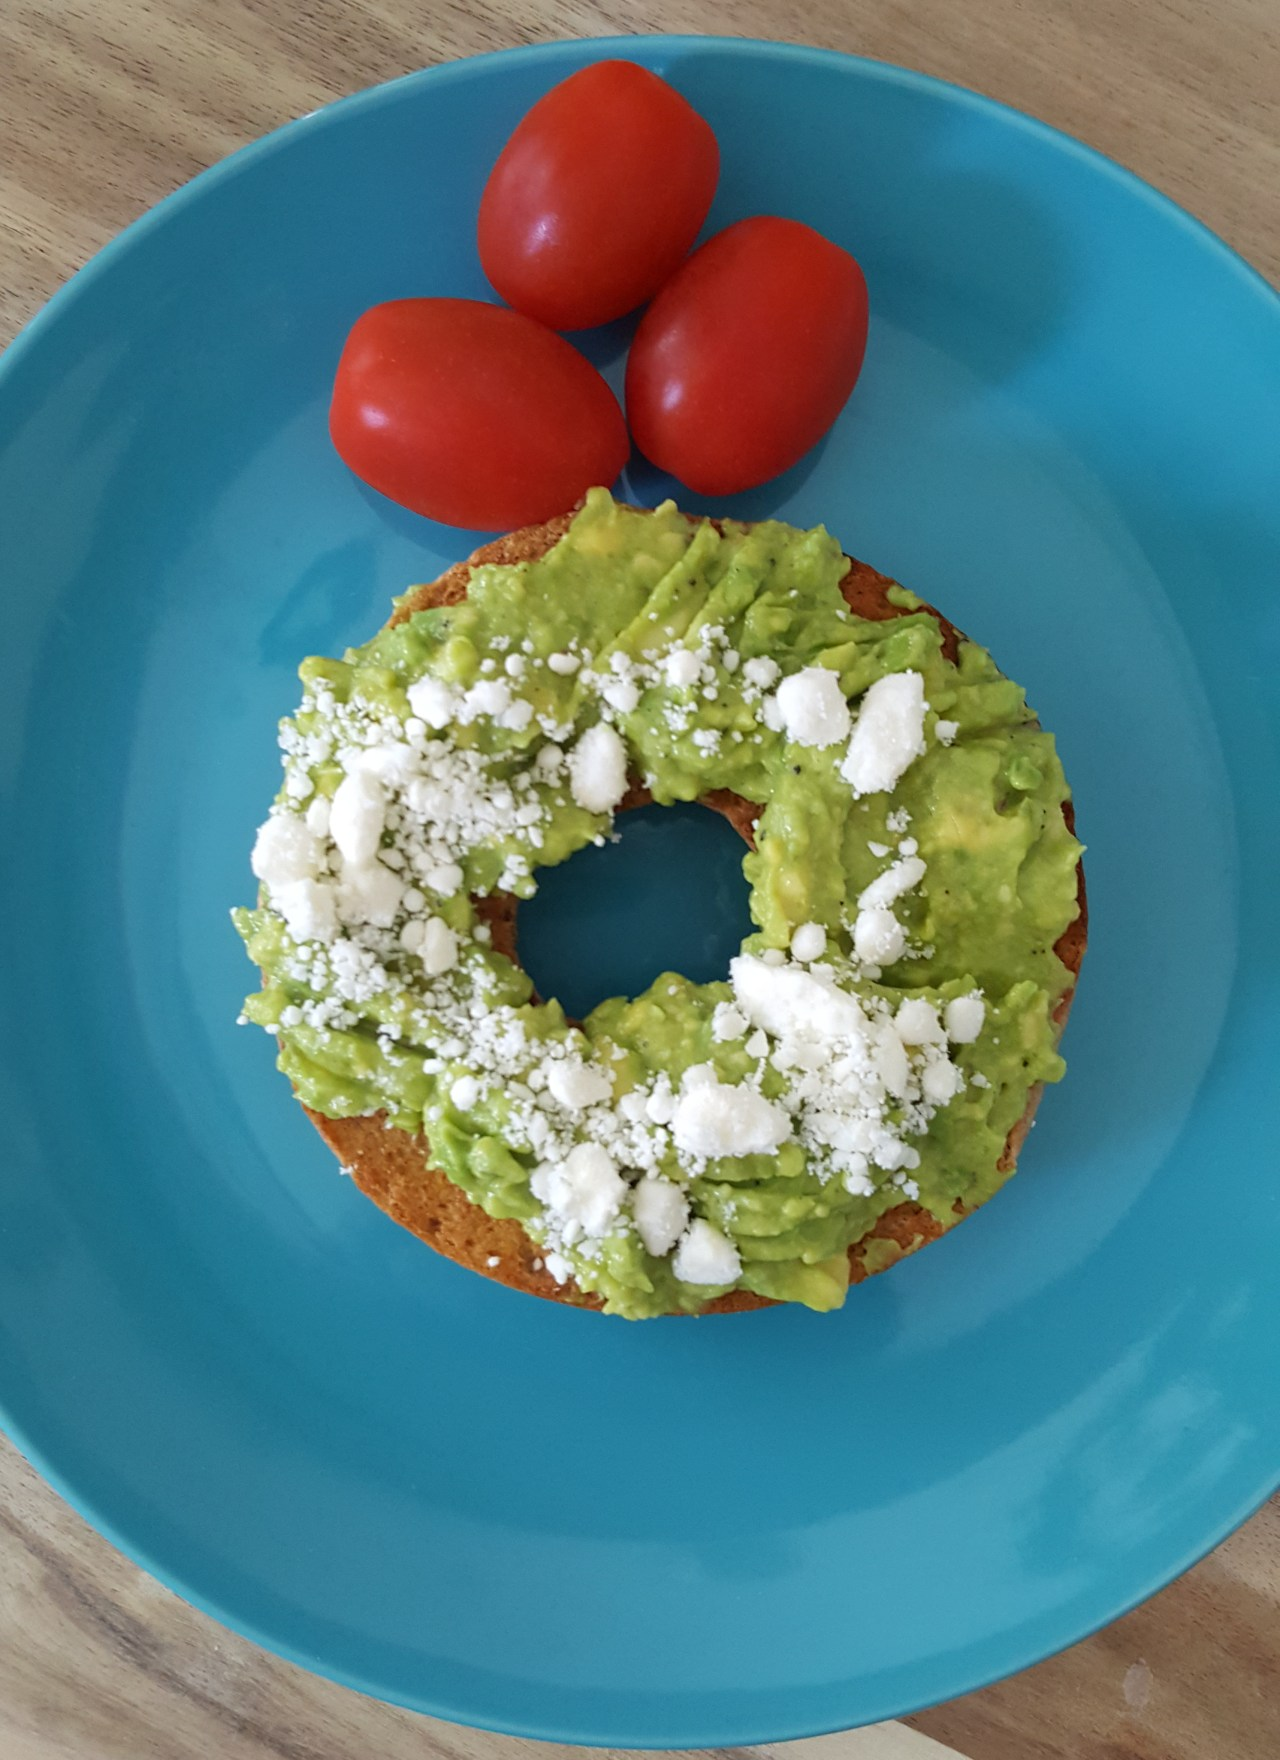 Got Avocados? Easy and Healthy Summer Lunch Idea